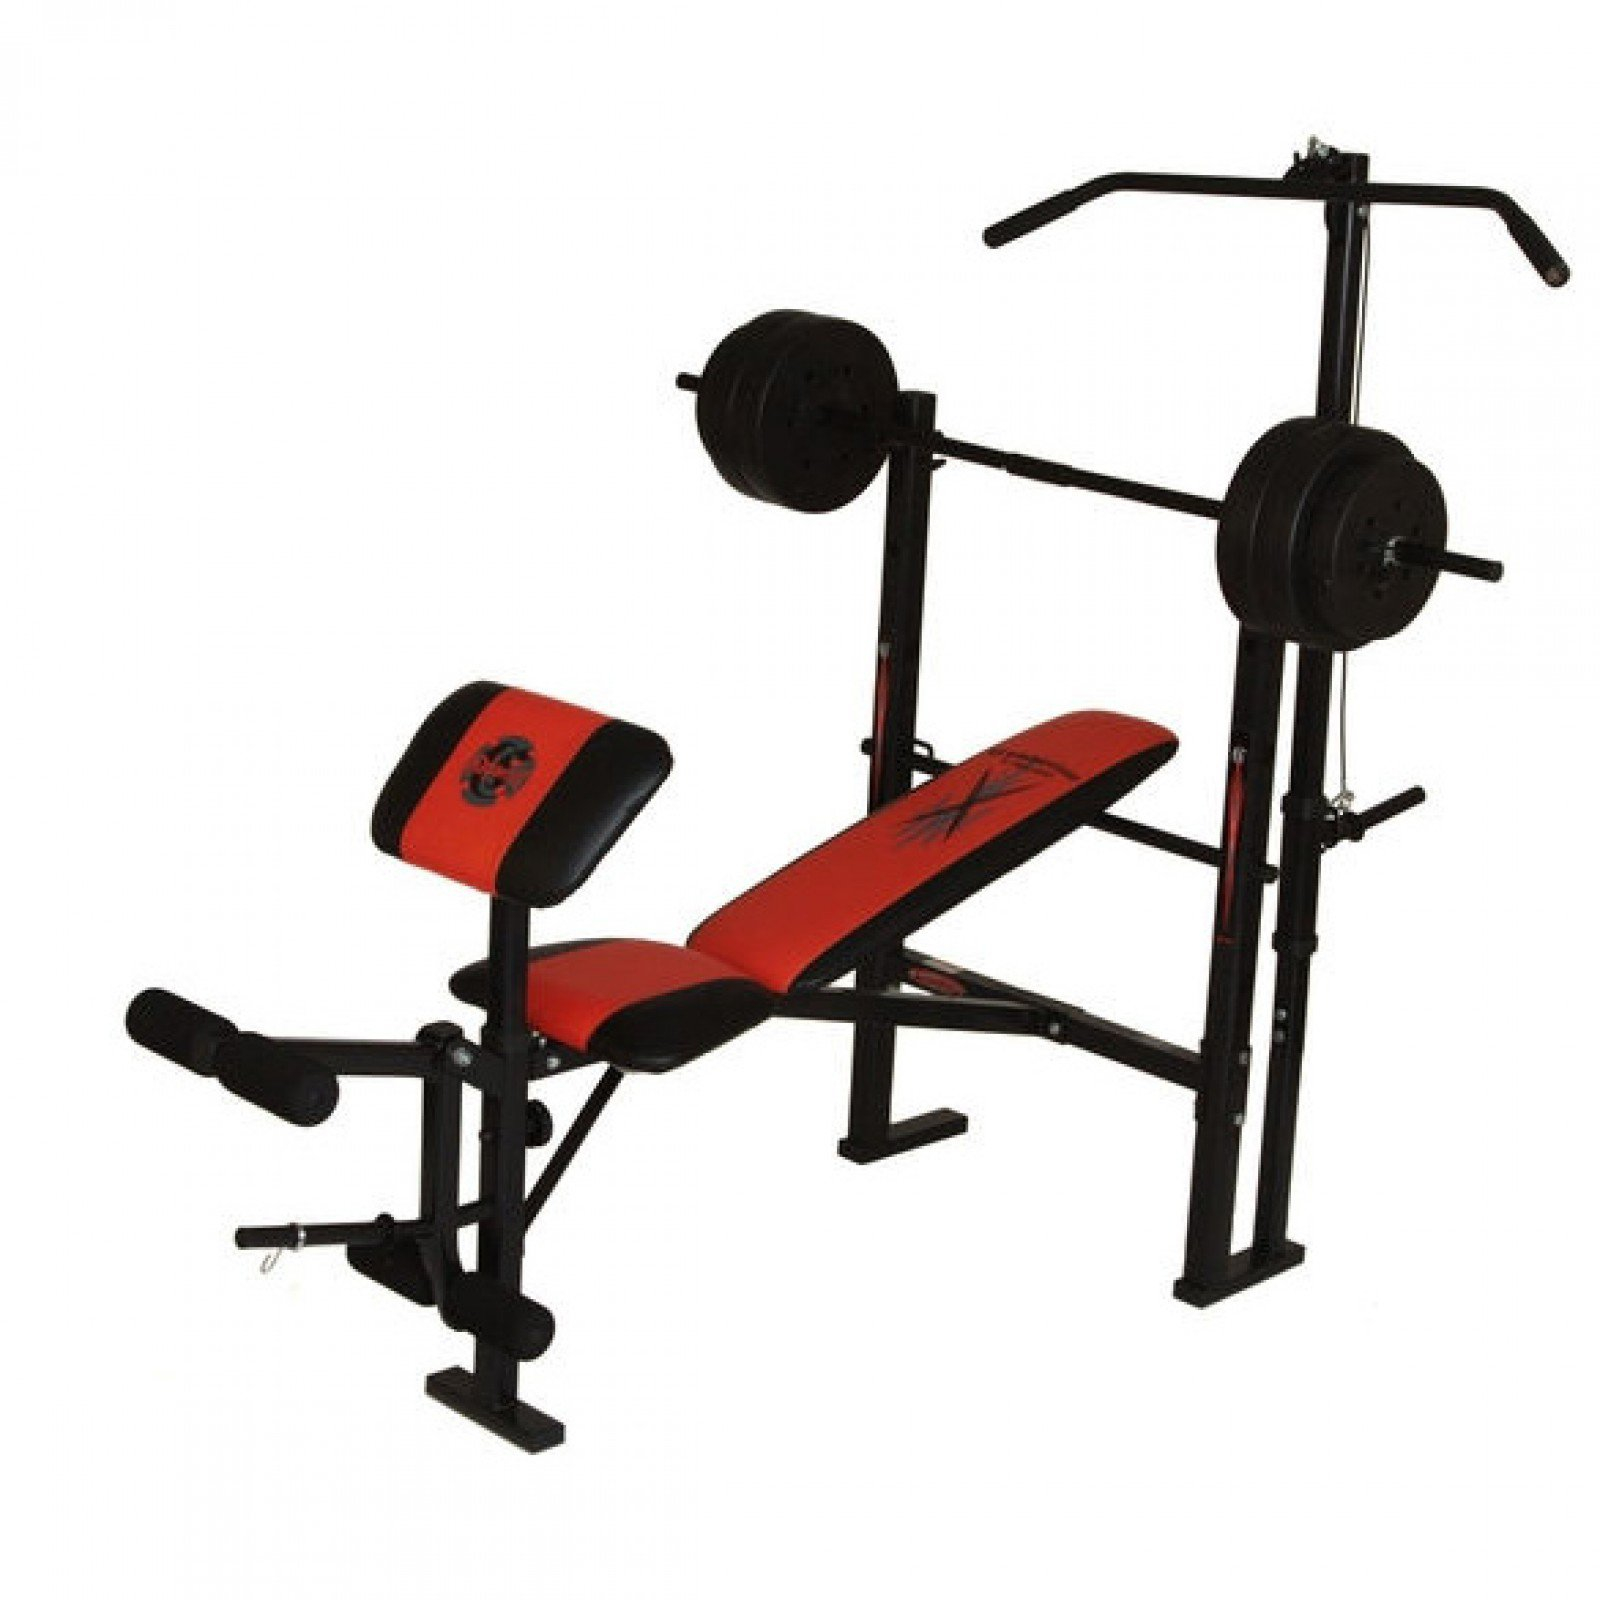 Weight Bench and Weights Set | Powerhouse Workout Bench | Powerhouse Weight Bench